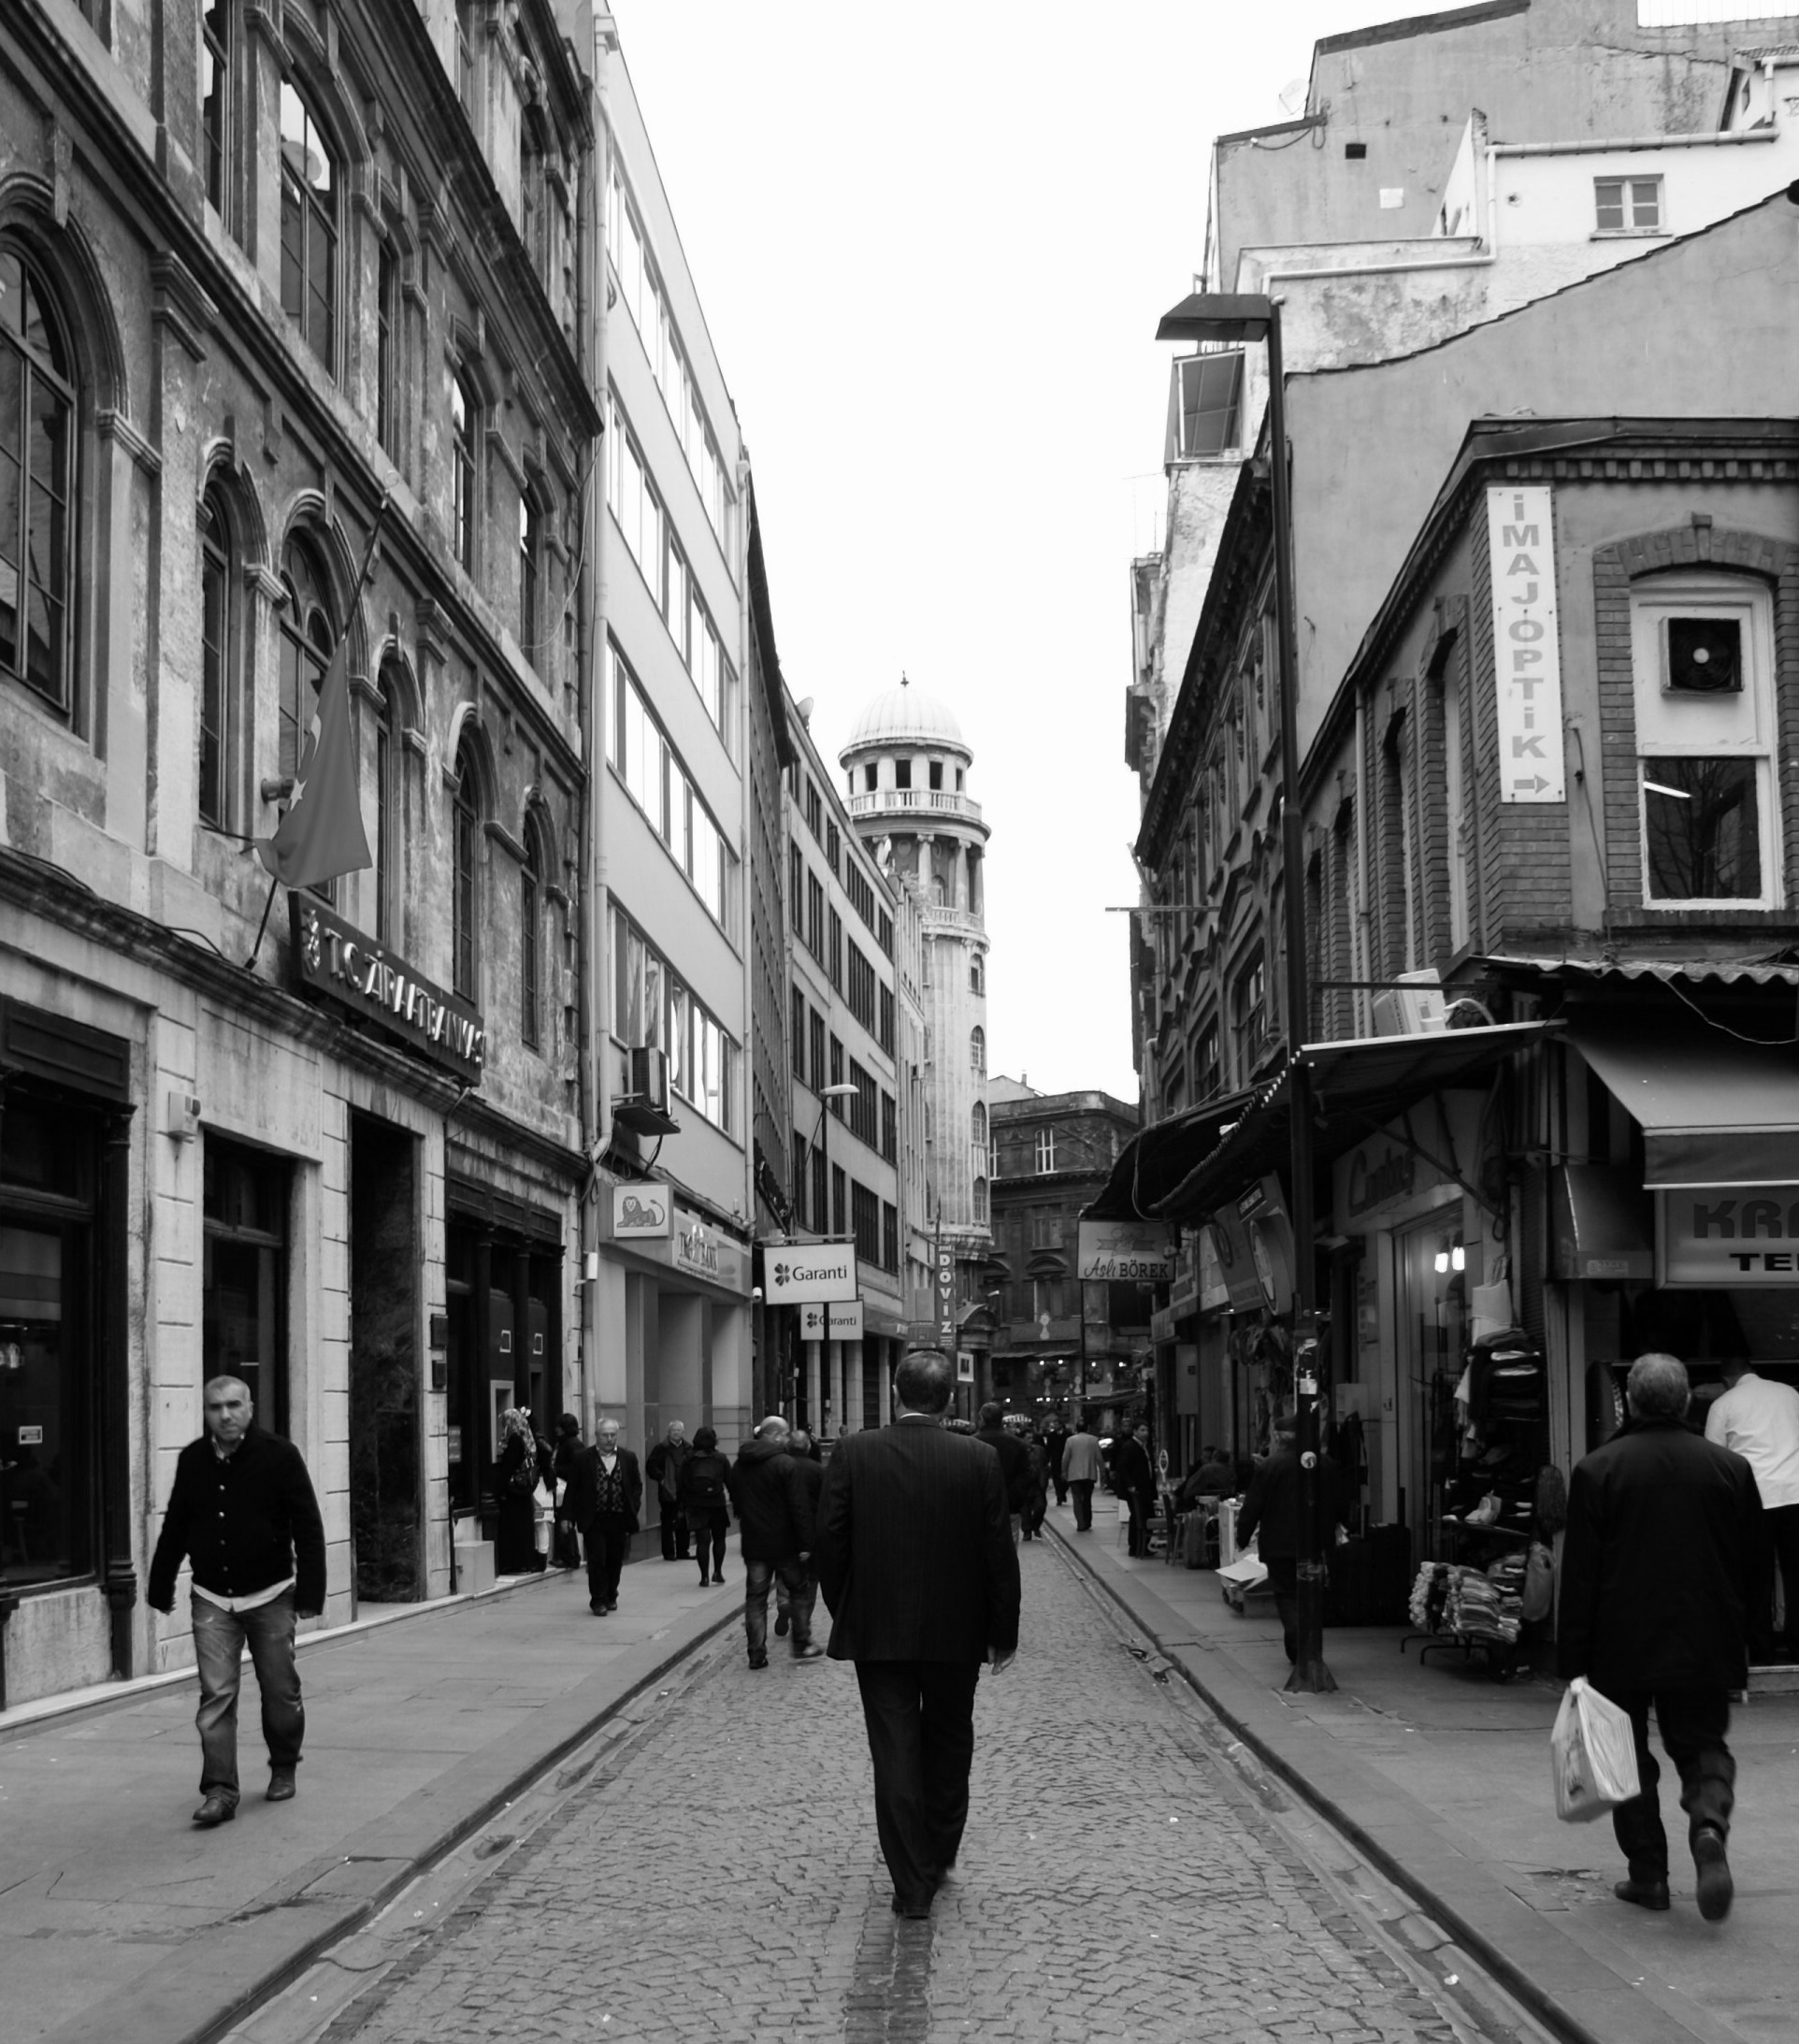 Probably my favorite Istanbul street shot